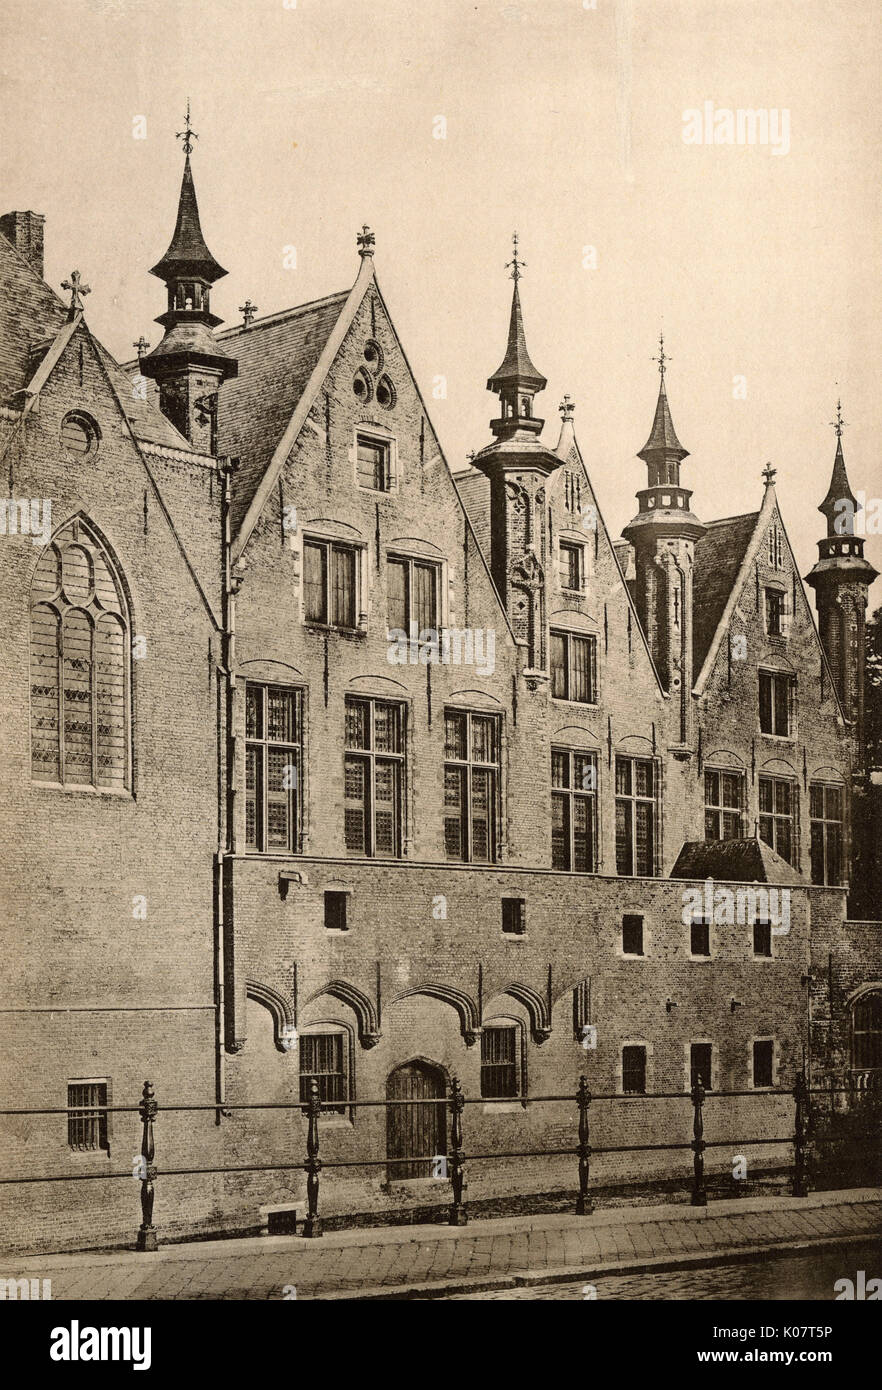 Palais du Franc (Brugse Vrije), with its distinctive turrets, Bruges, Belgium, dating back to the 16th century. - Stock Image